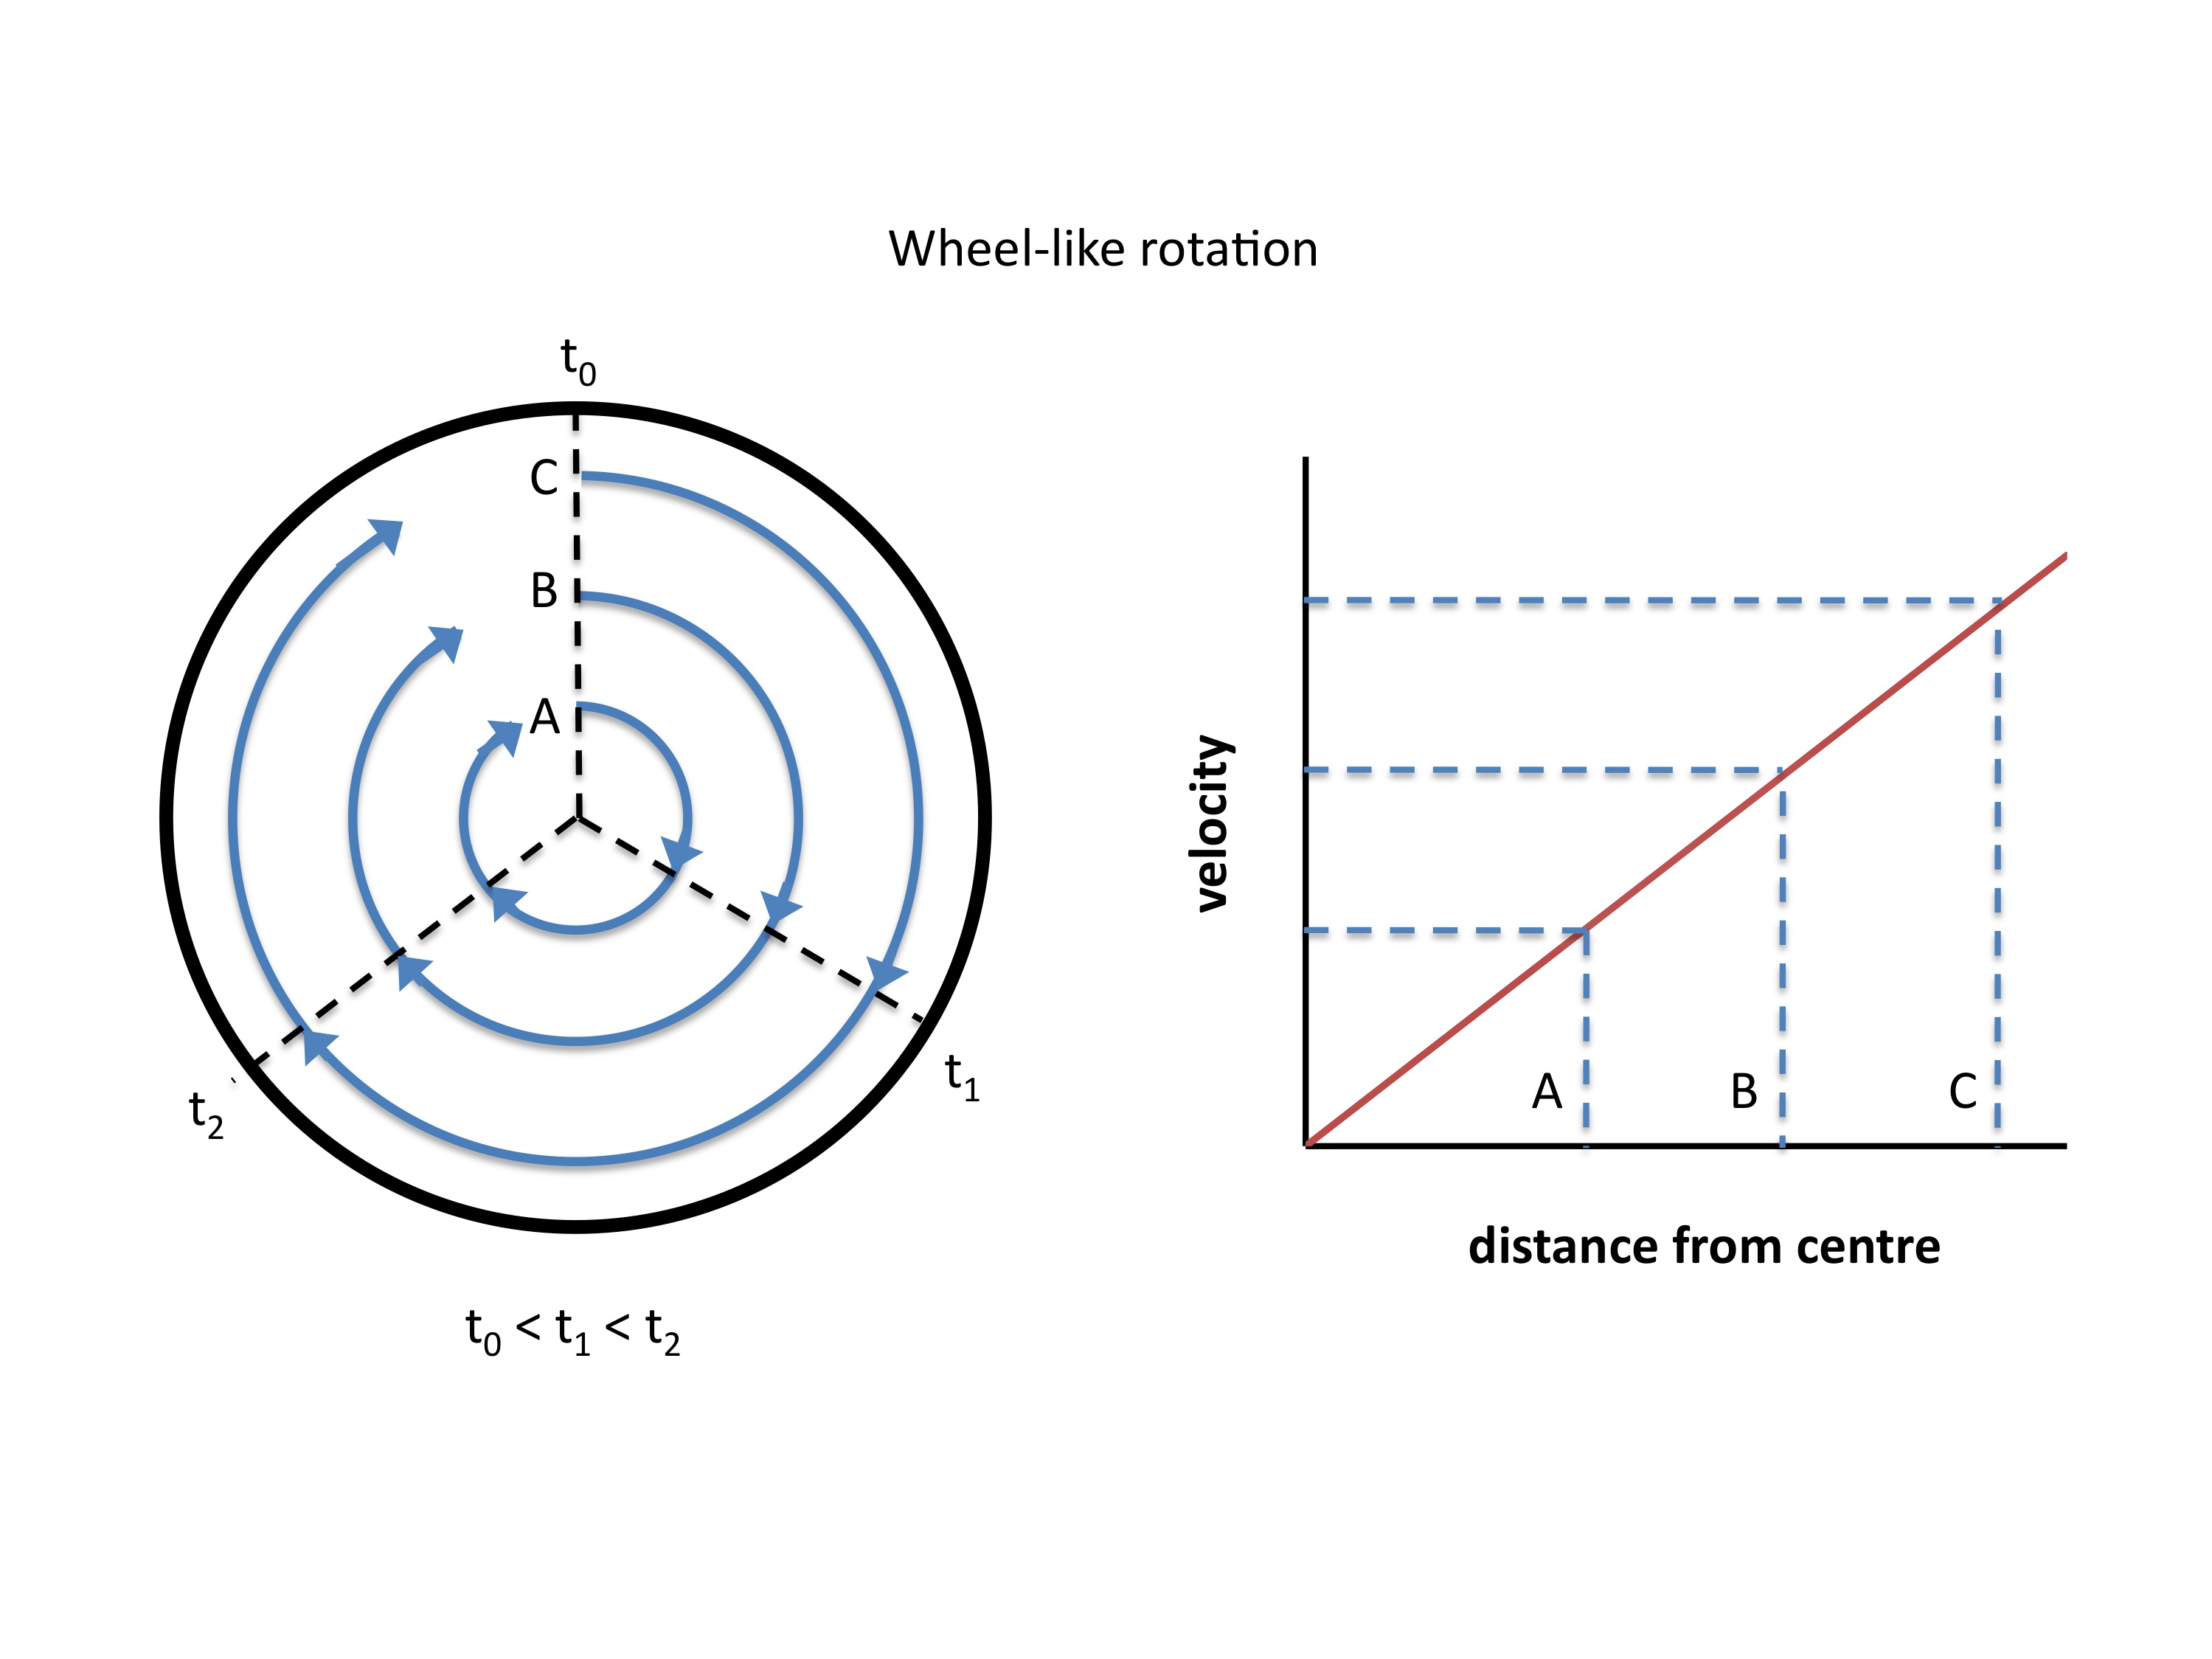 Diagram showing wheel-like rotation